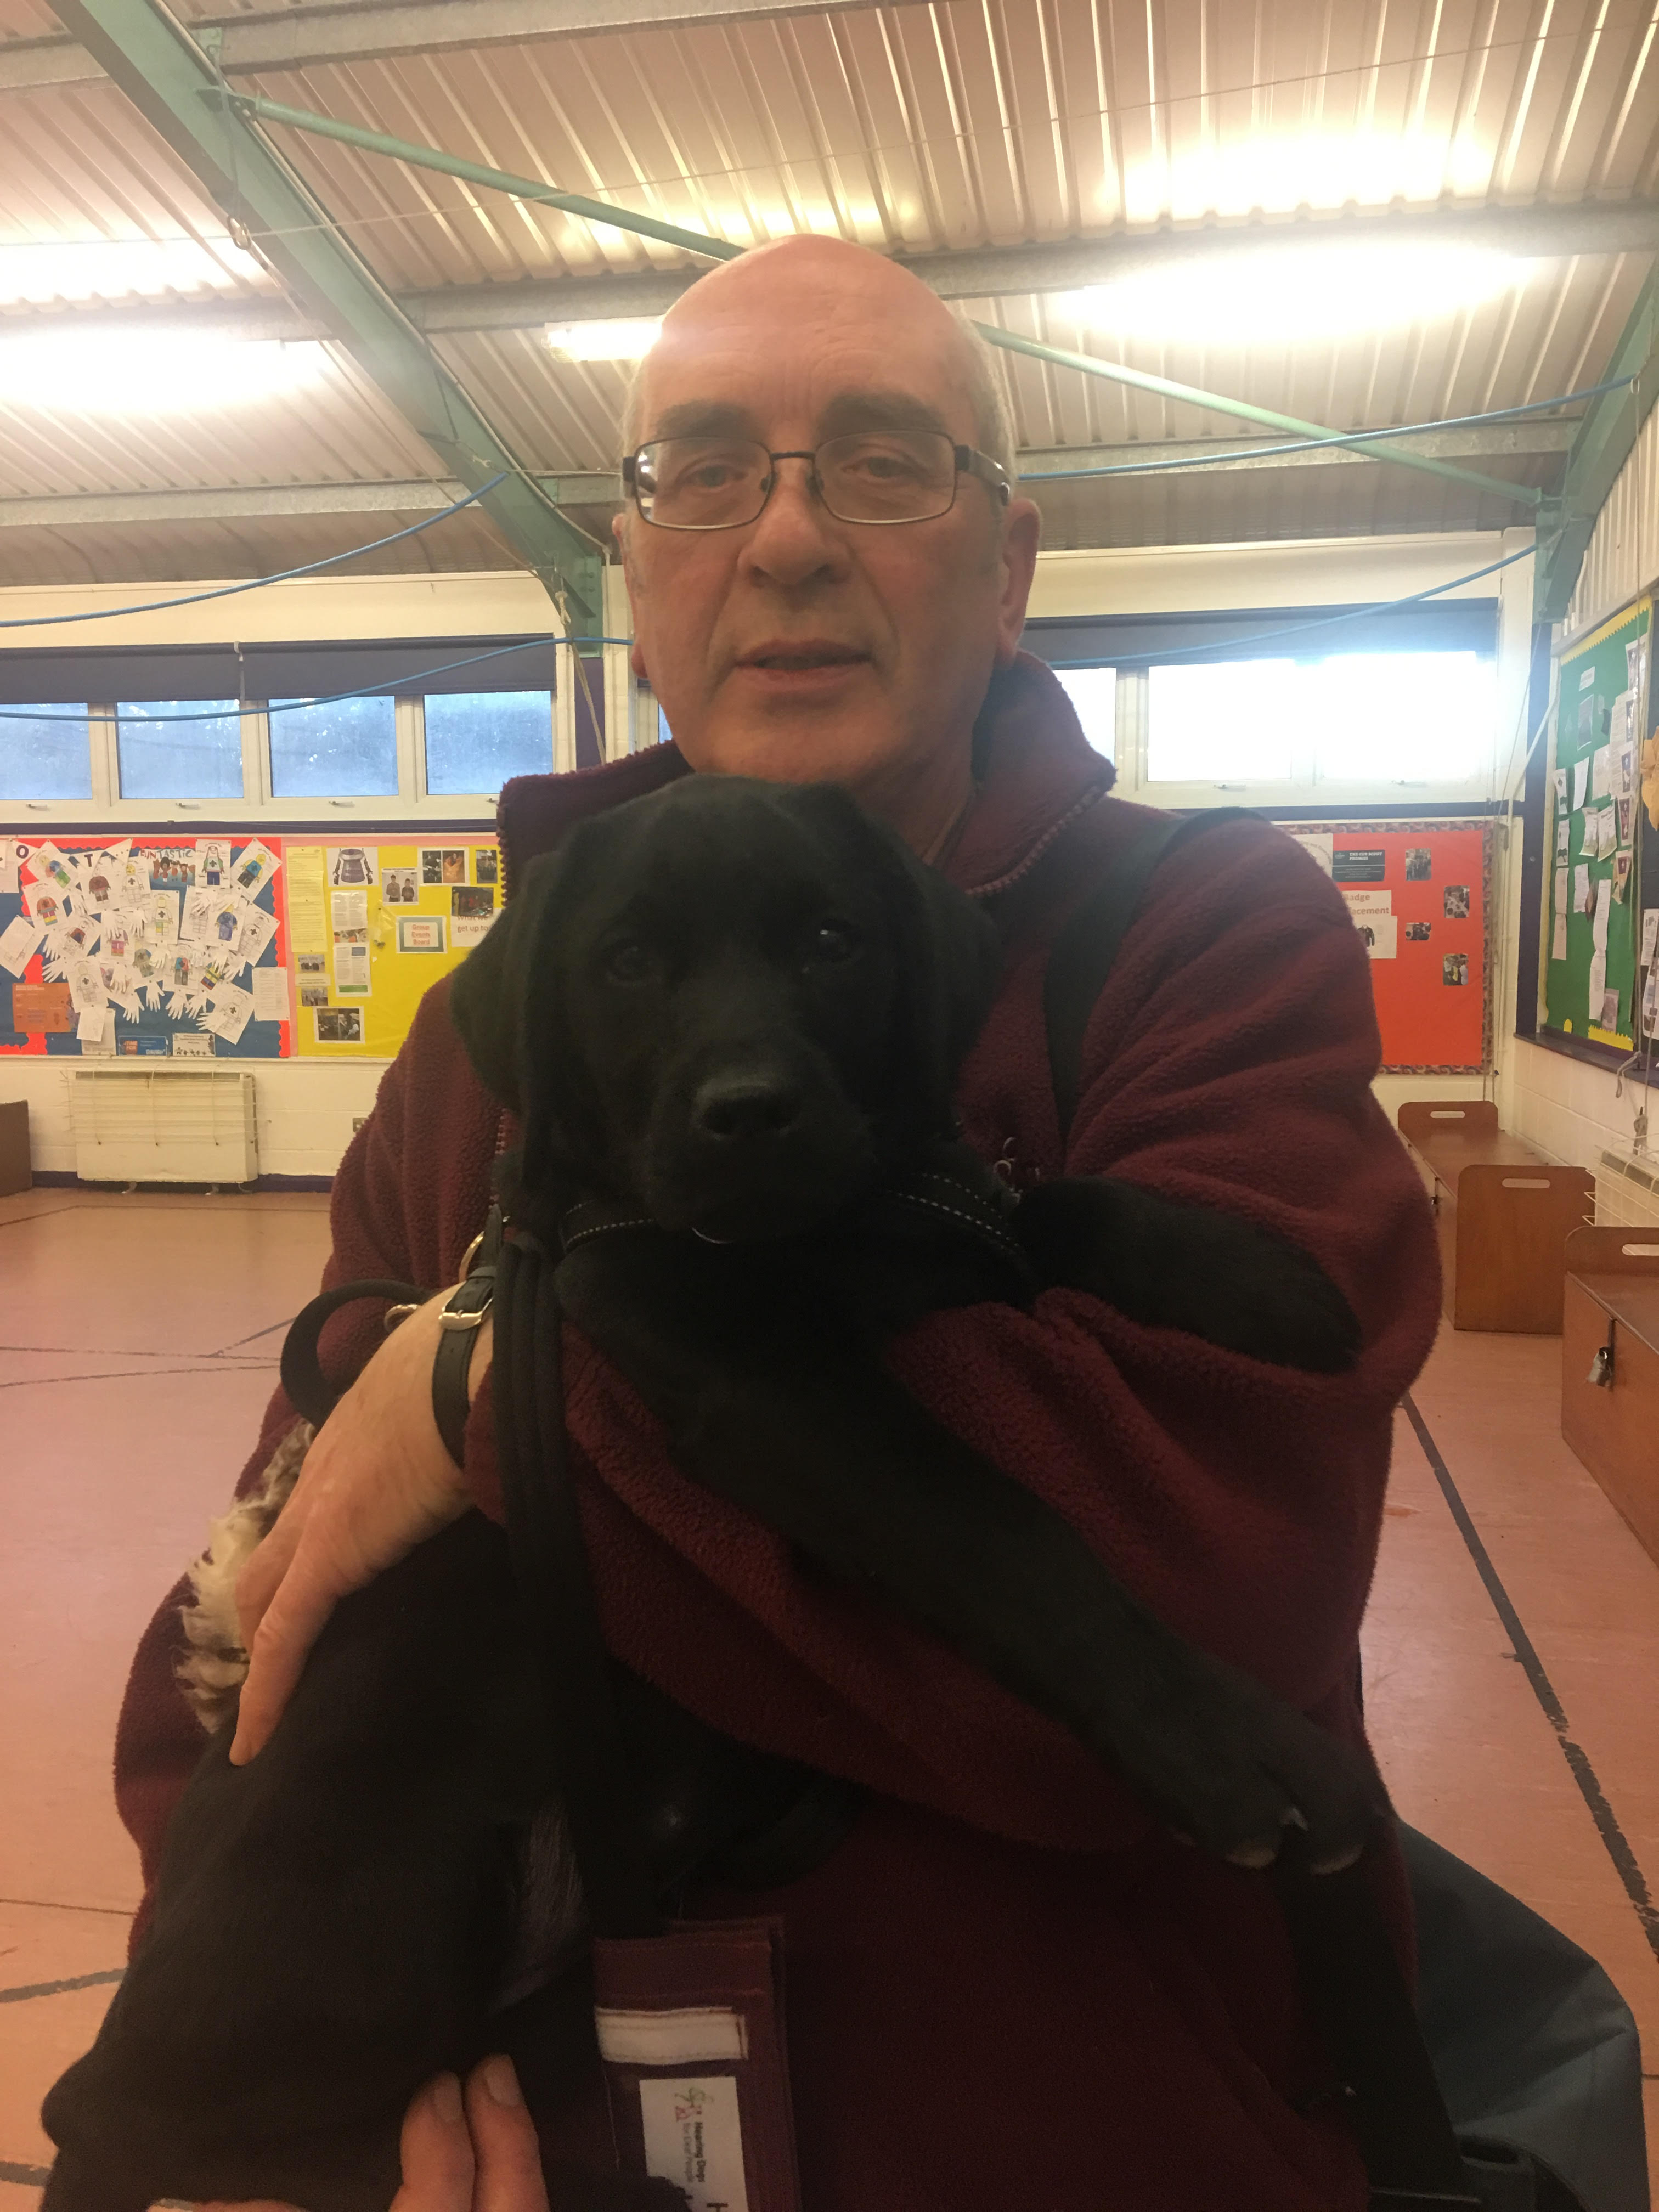 Hearing Dogs for the Deaf puppy socialiser Doug with Wagging Tails pup Neve